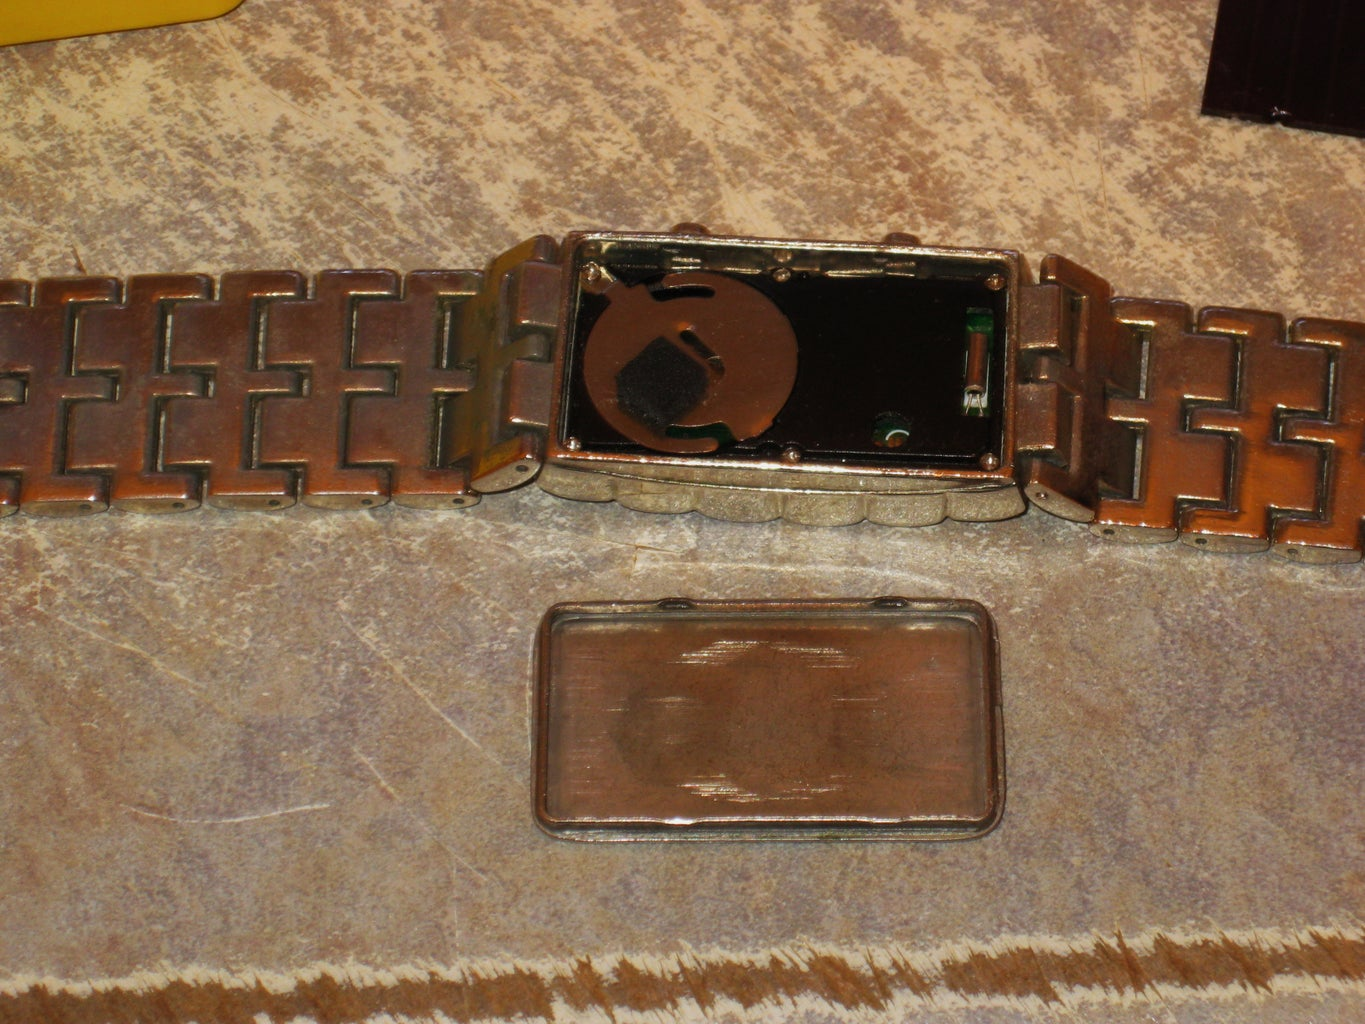 Getting the Watch and Flash Light Apart